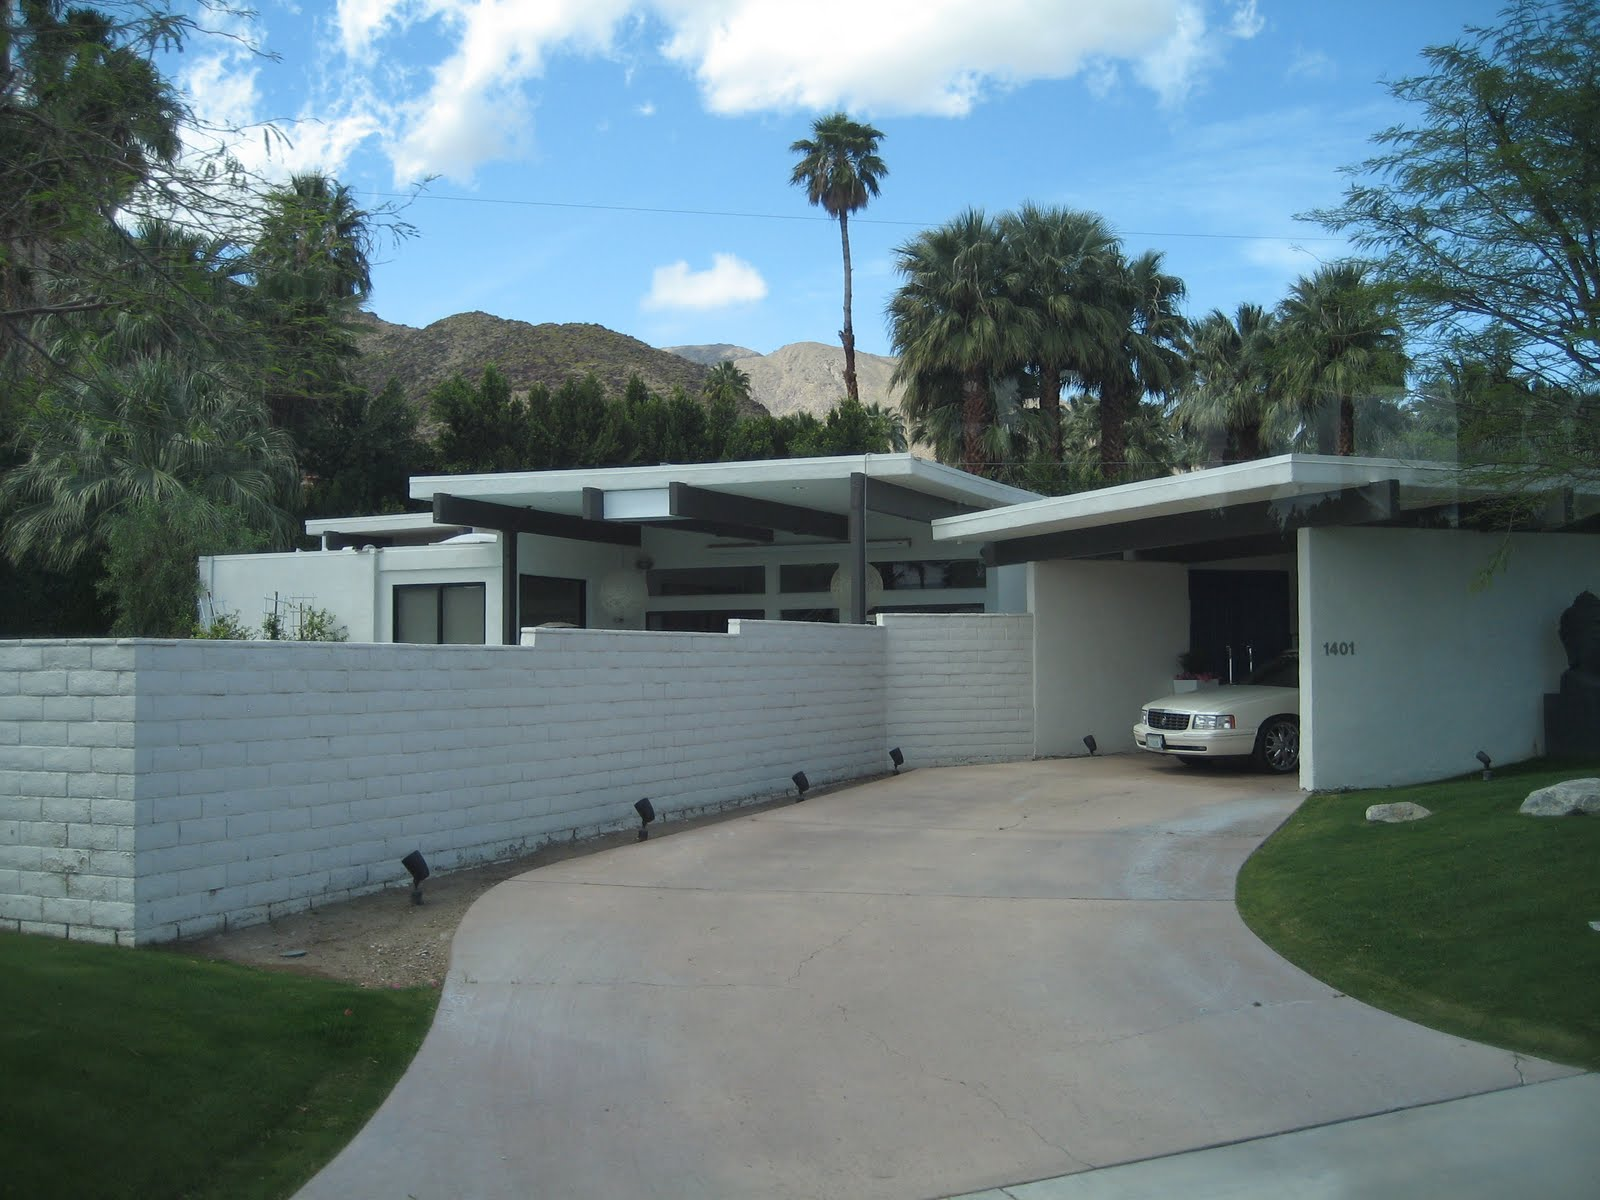 Palm Springs Celebrity Homes Bus Tour - YouTube